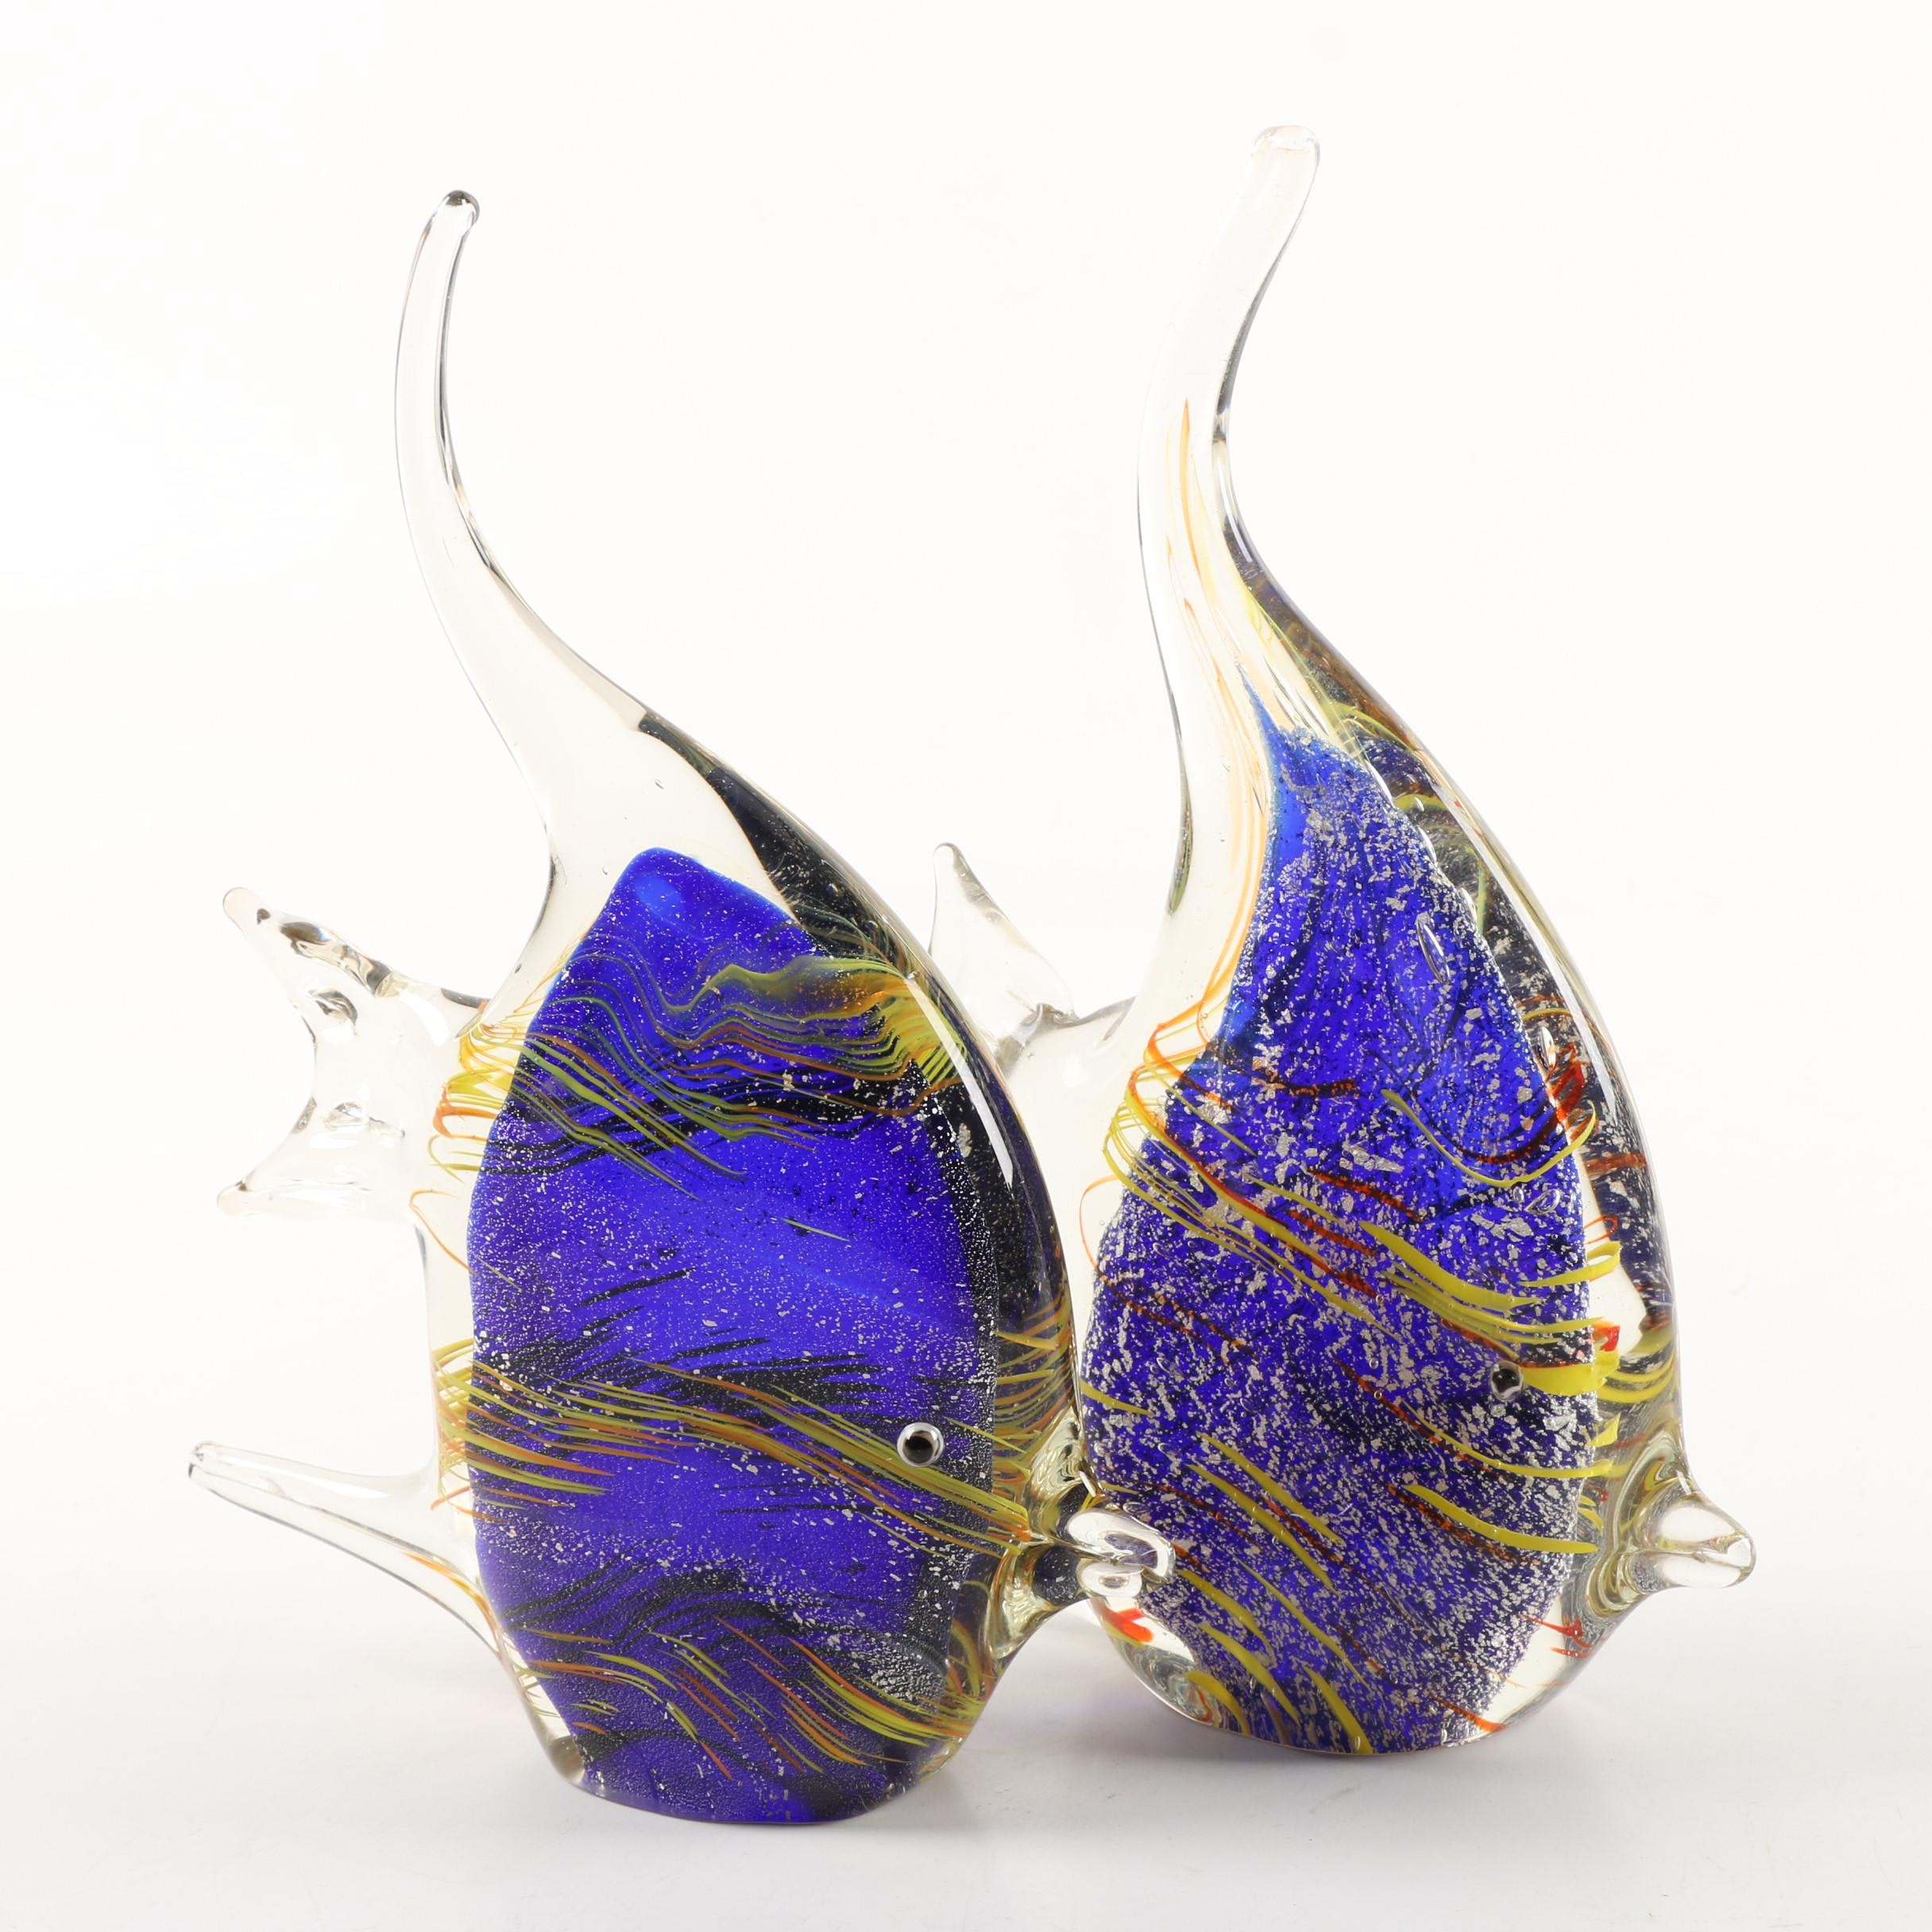 Vintage Murano Style Art Glass Fish Sculptures